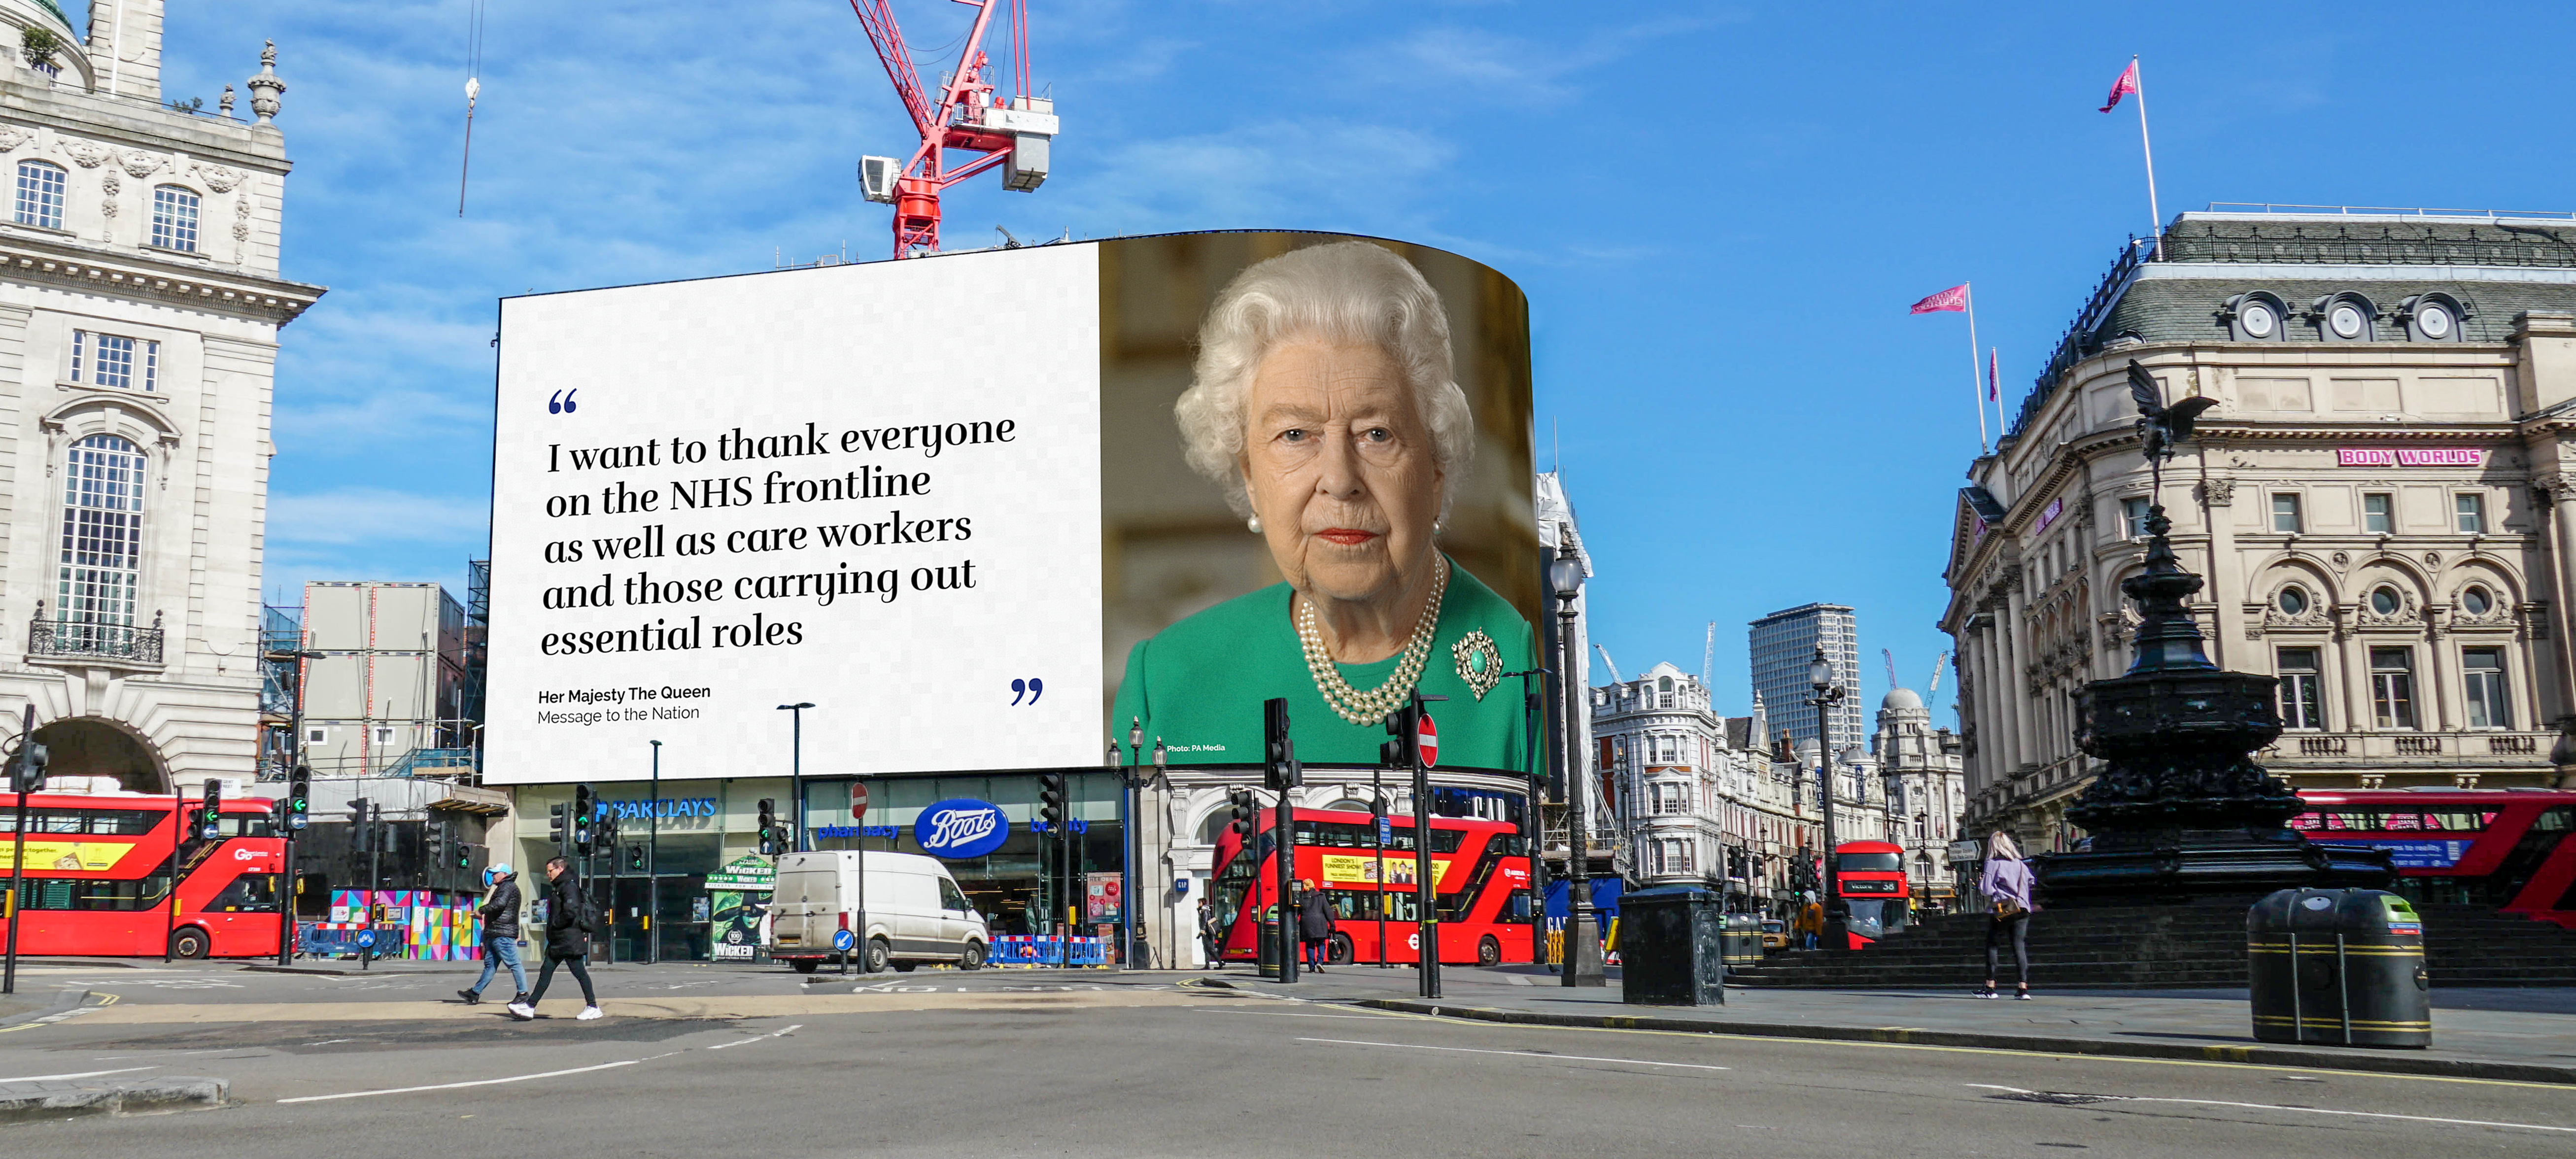 Piccadilly Lights: ads follow the Queen's speech on Covid-19